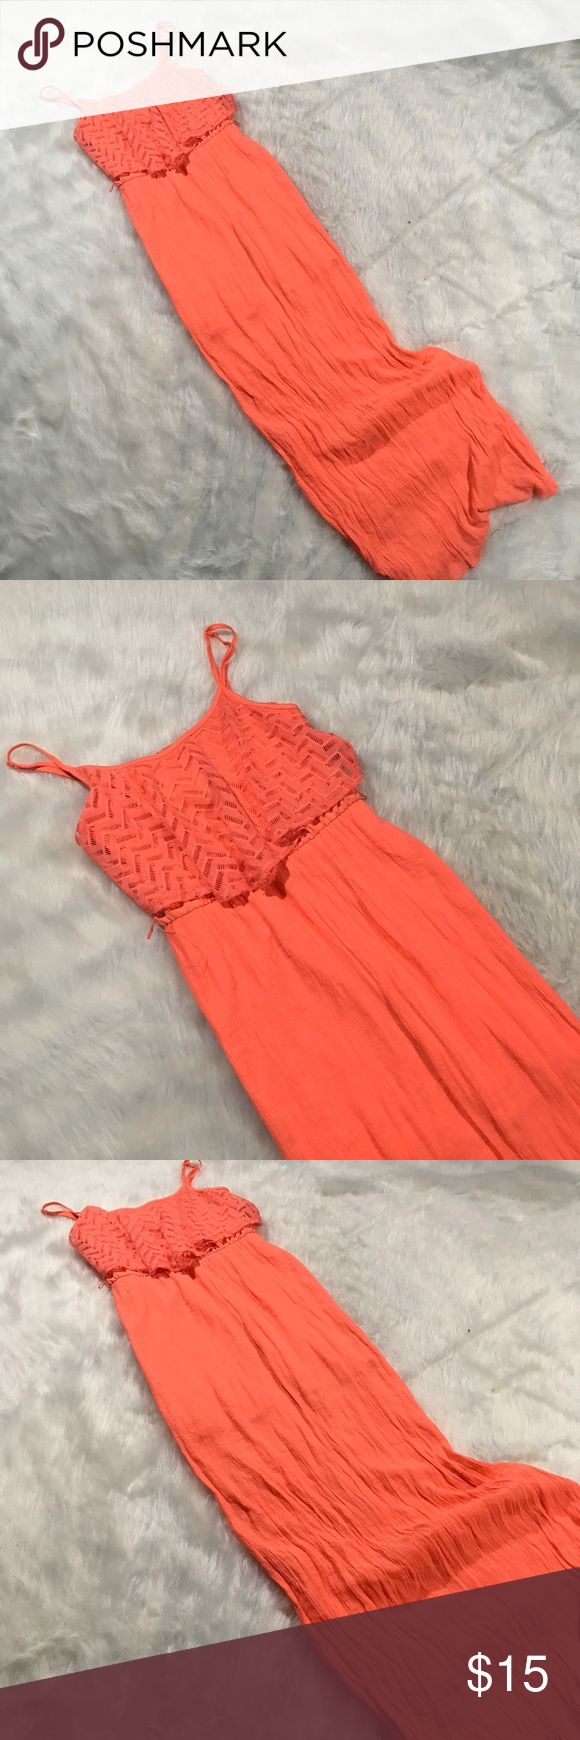 "Trixxi Coral Maxi Dress Size M Spaghetti Strap Trixxi Coral Maxi Dress Size M Spaghetti Strap Textured Material Summer Beach  Size- See measurements  Measurements: Armpit to armpit- 31"" Waist un-stretched- 26"" Length- 55"" Trixxi Dresses Maxi"